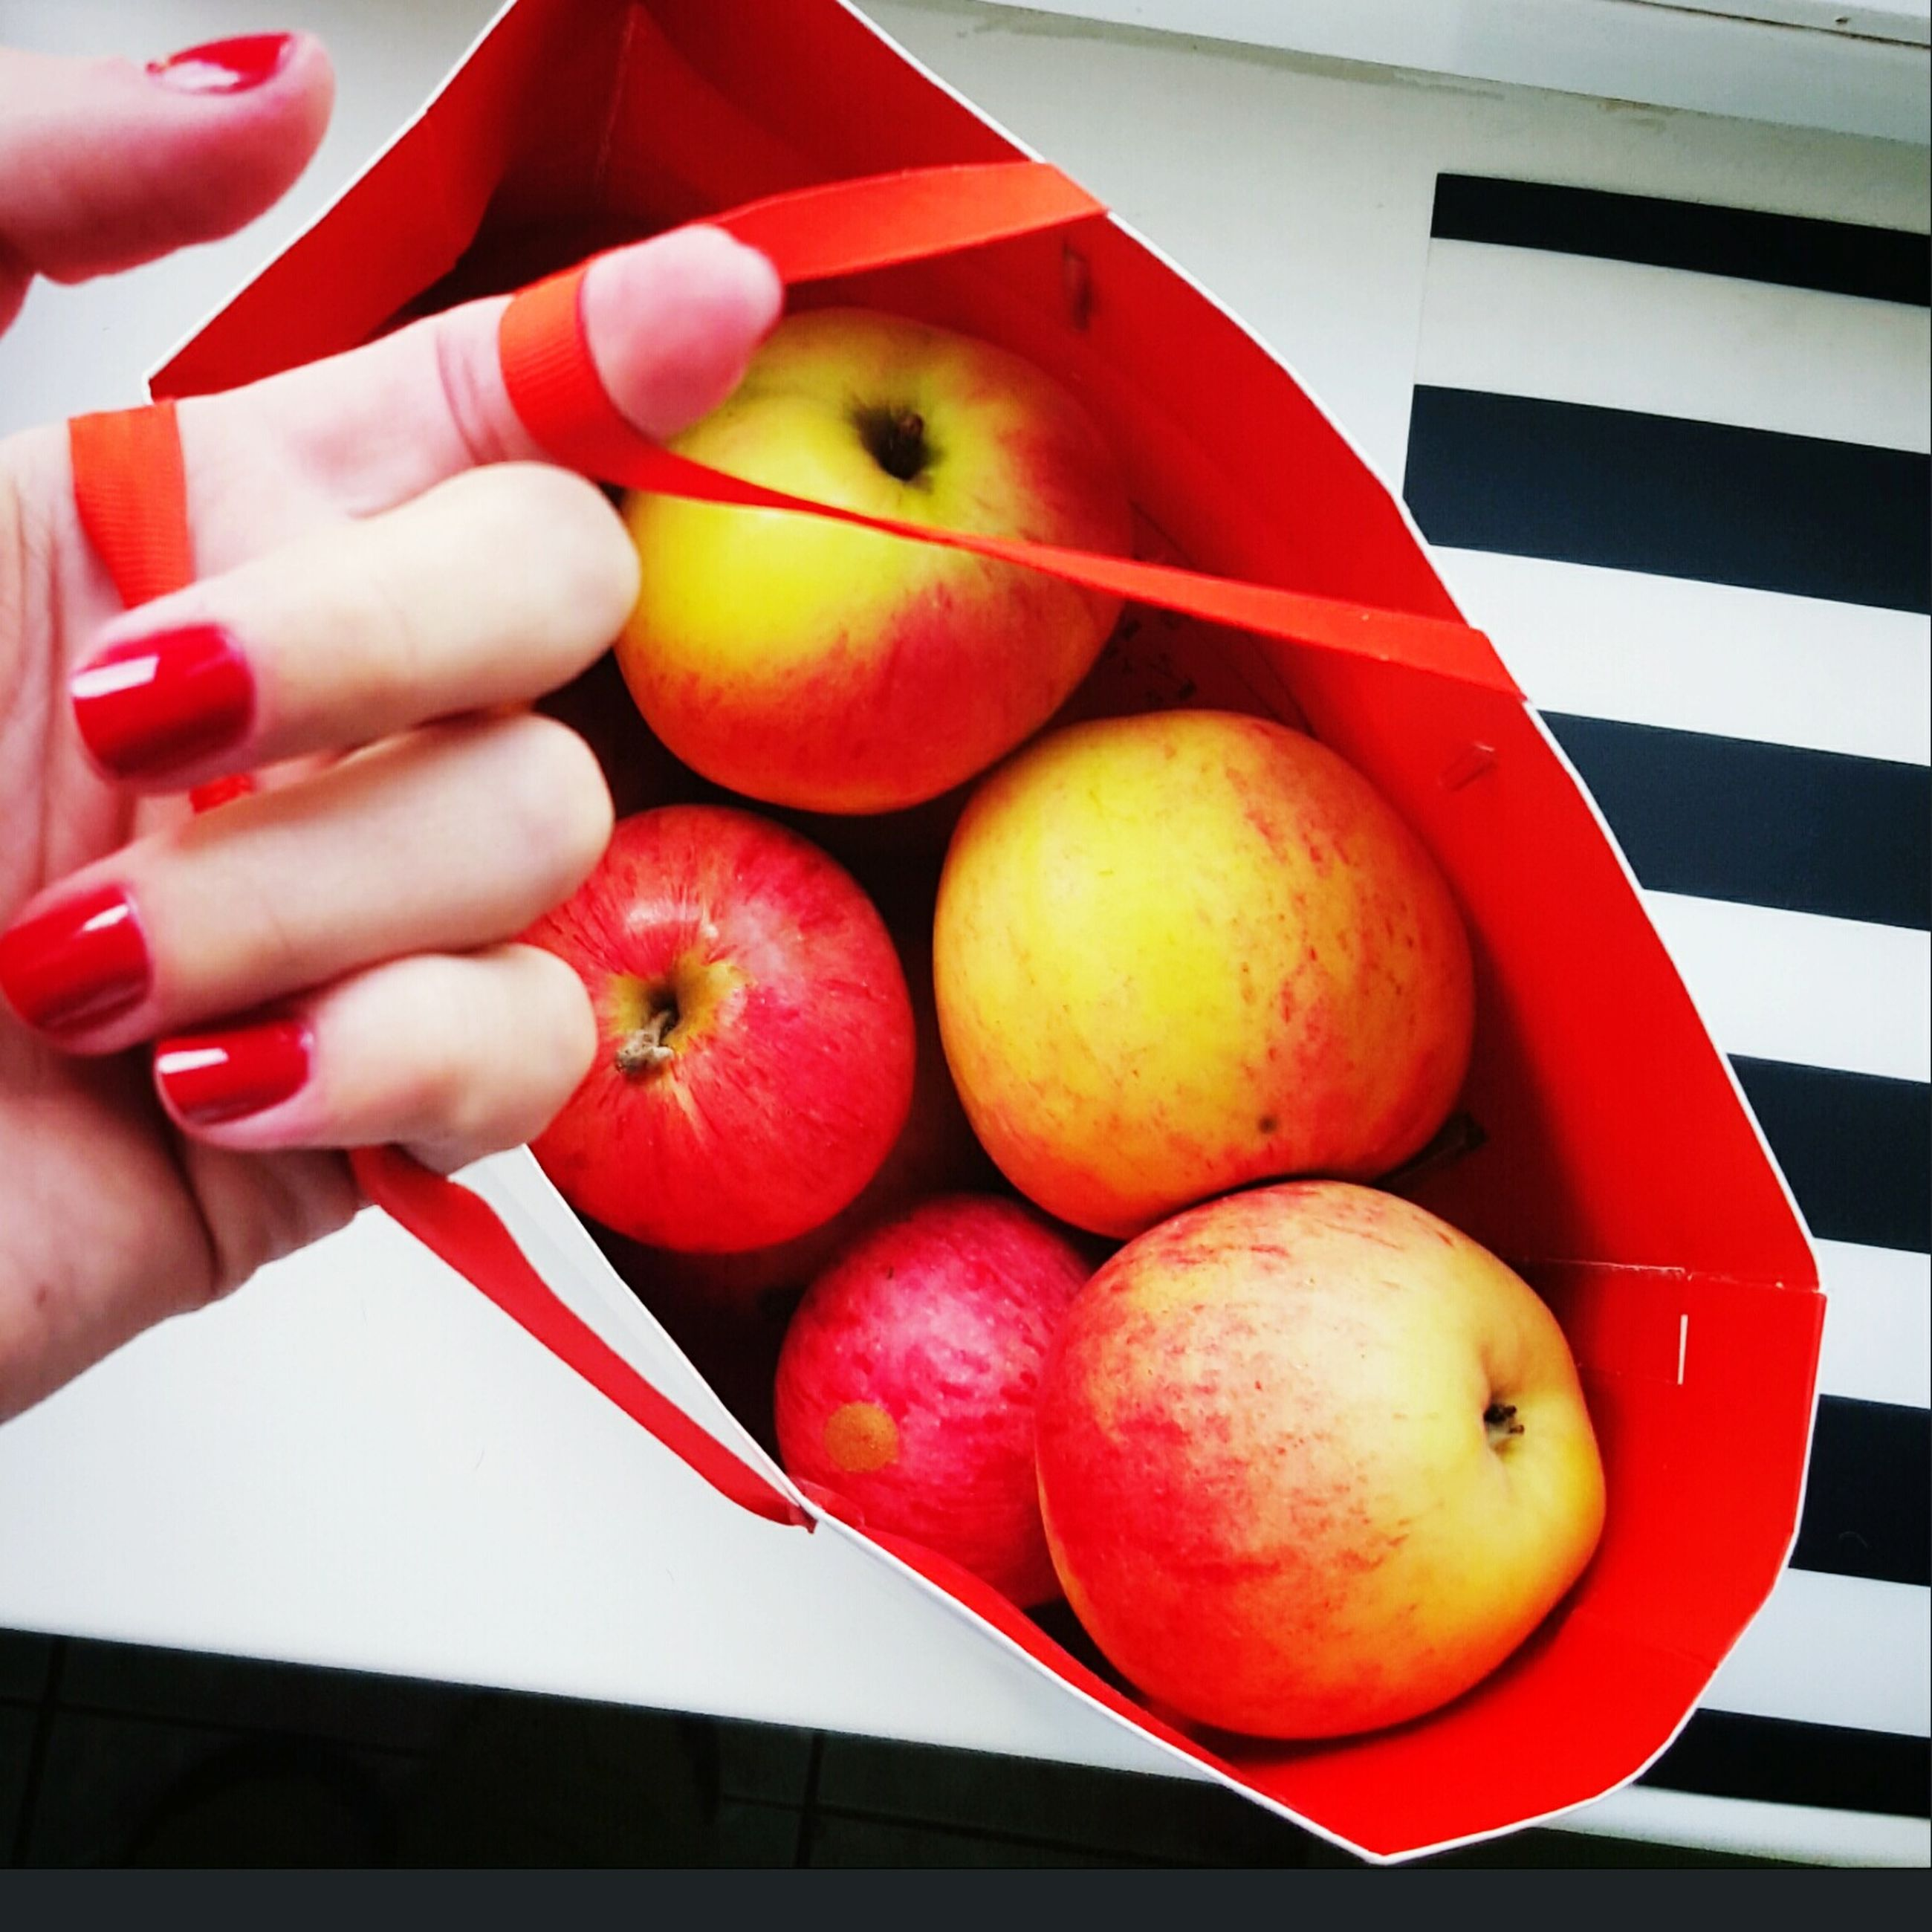 food and drink, food, person, holding, fruit, healthy eating, freshness, cropped, part of, lifestyles, red, unrecognizable person, indoors, human finger, leisure activity, apple - fruit, vegetable